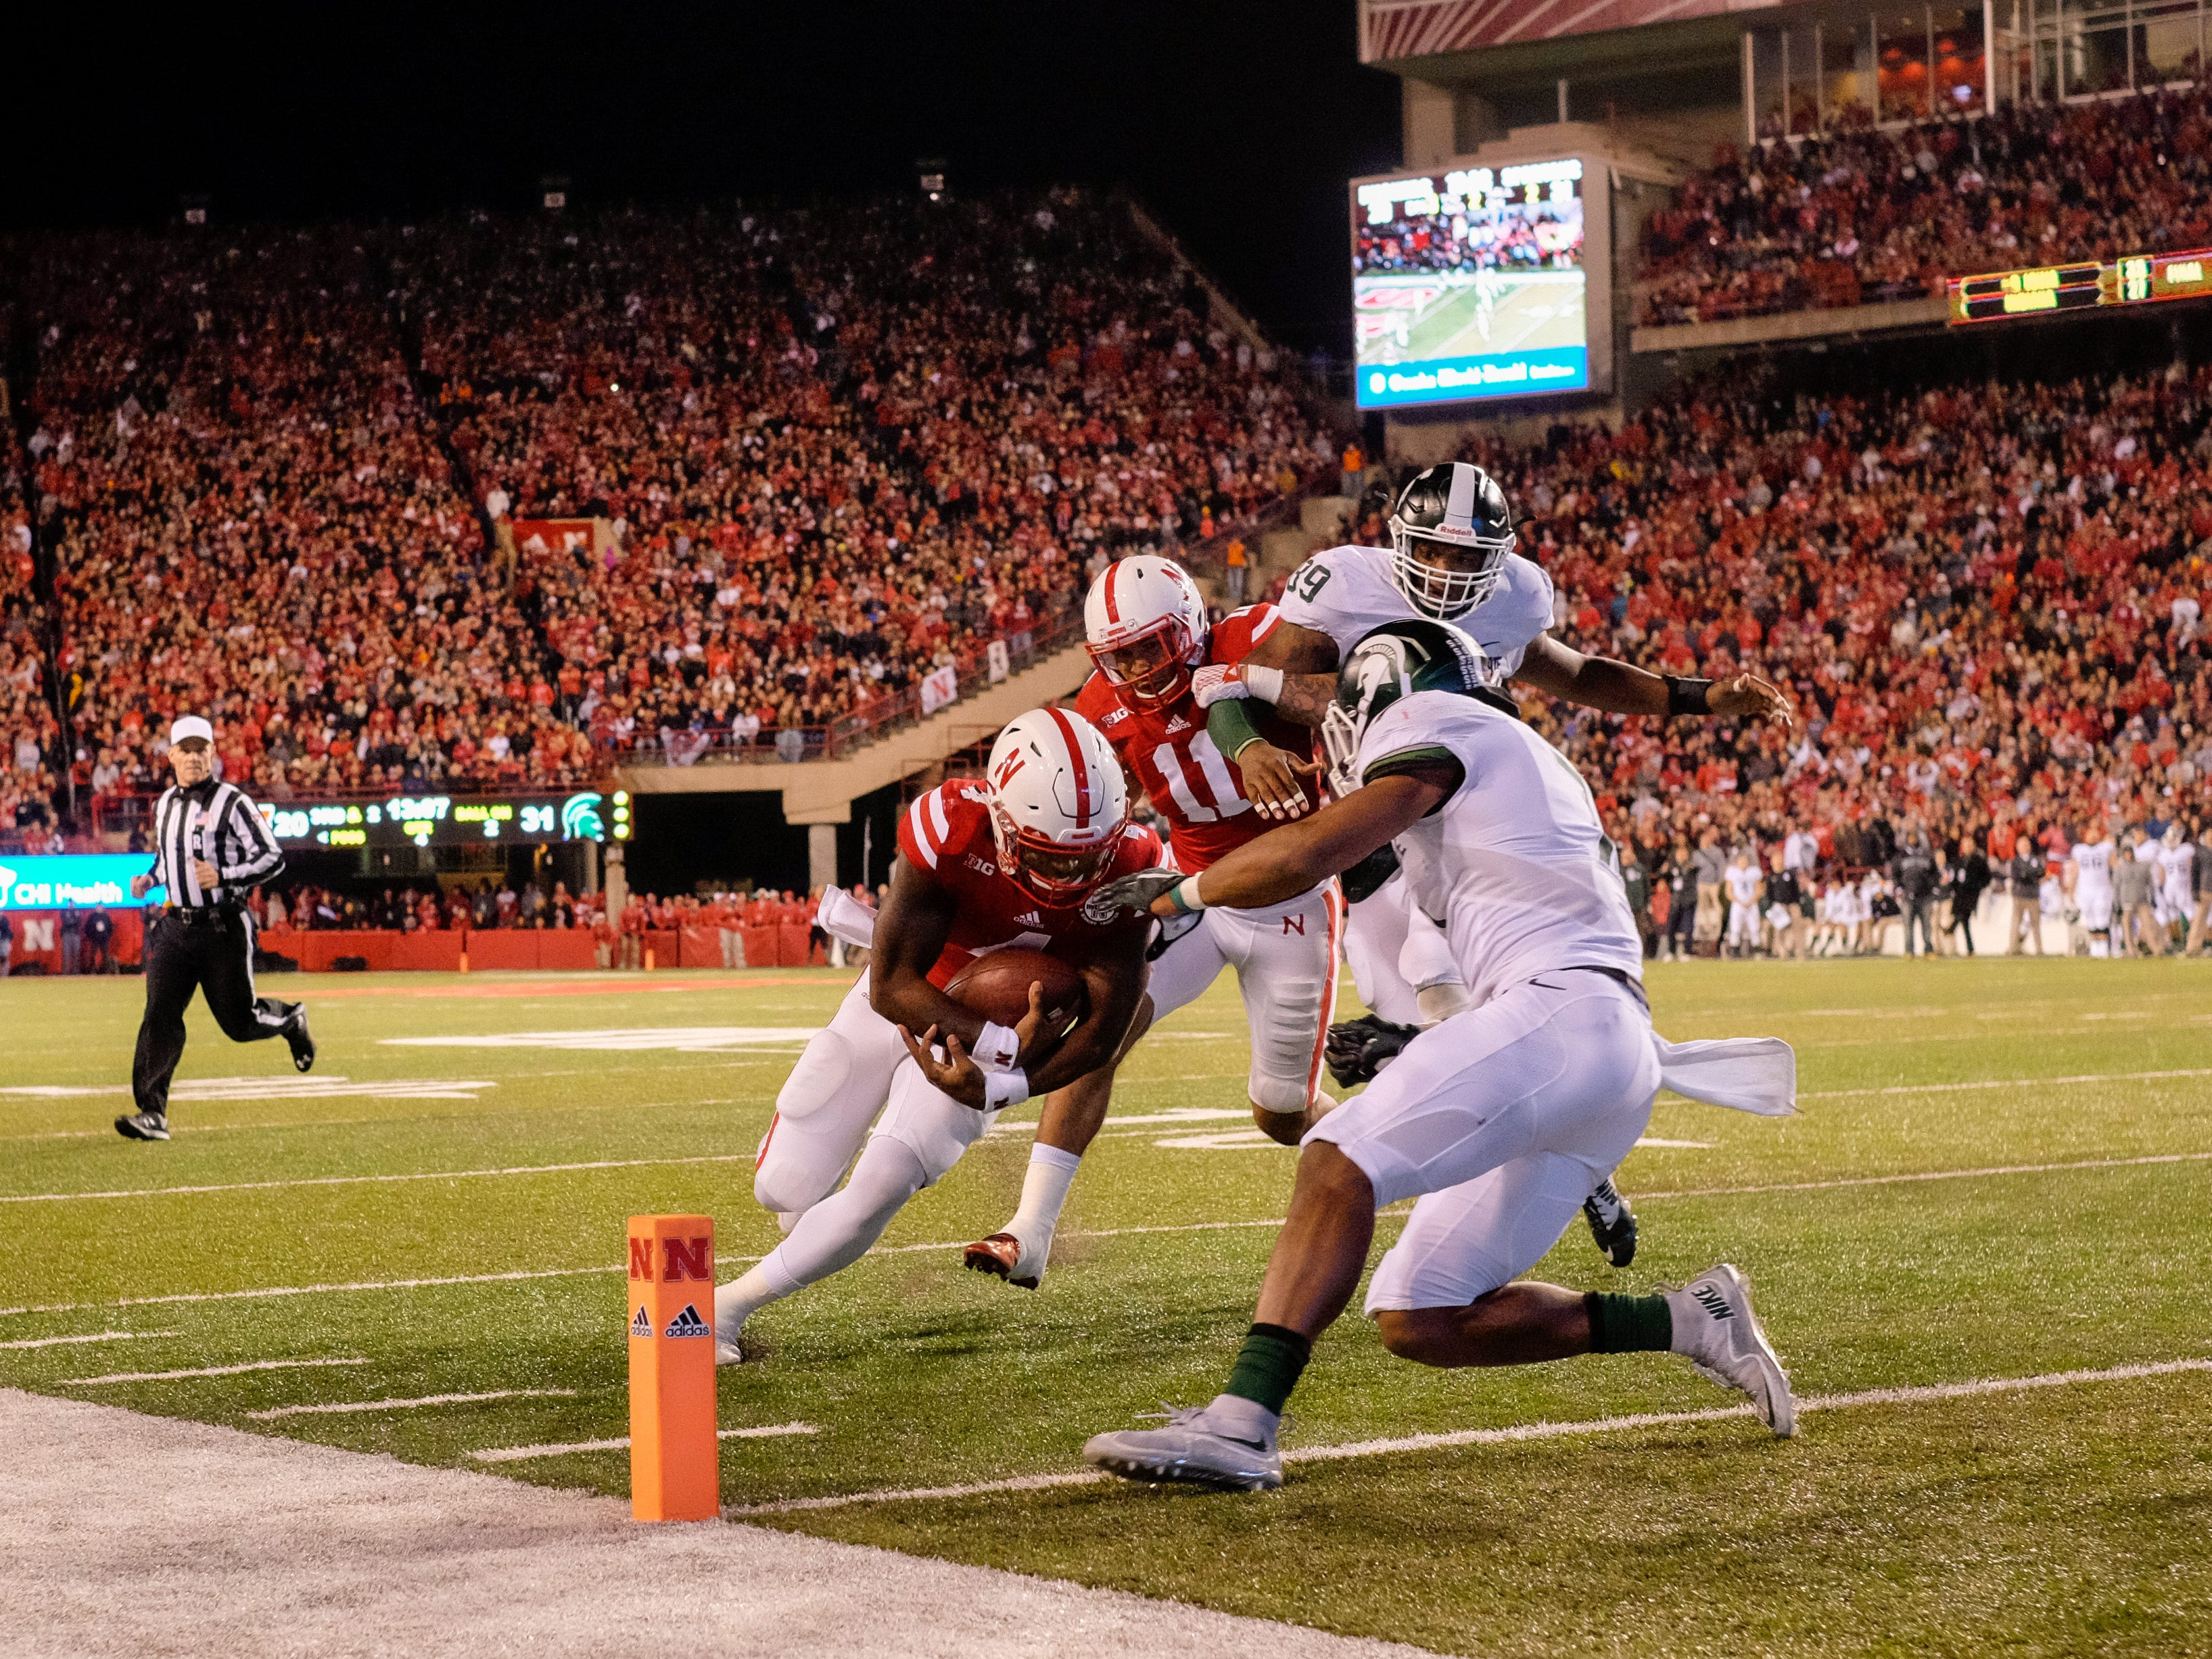 11. Michigan State at Nebraska. When: Nov. 11. Where: Lincoln, Neb.  The buzz: Nebraska is hoping to turn things around this season with new head coach Scott Frost. The last time these two teams met, in 2015, in what was an instant classic with the Cornhuskers coming out on top, 39-38.